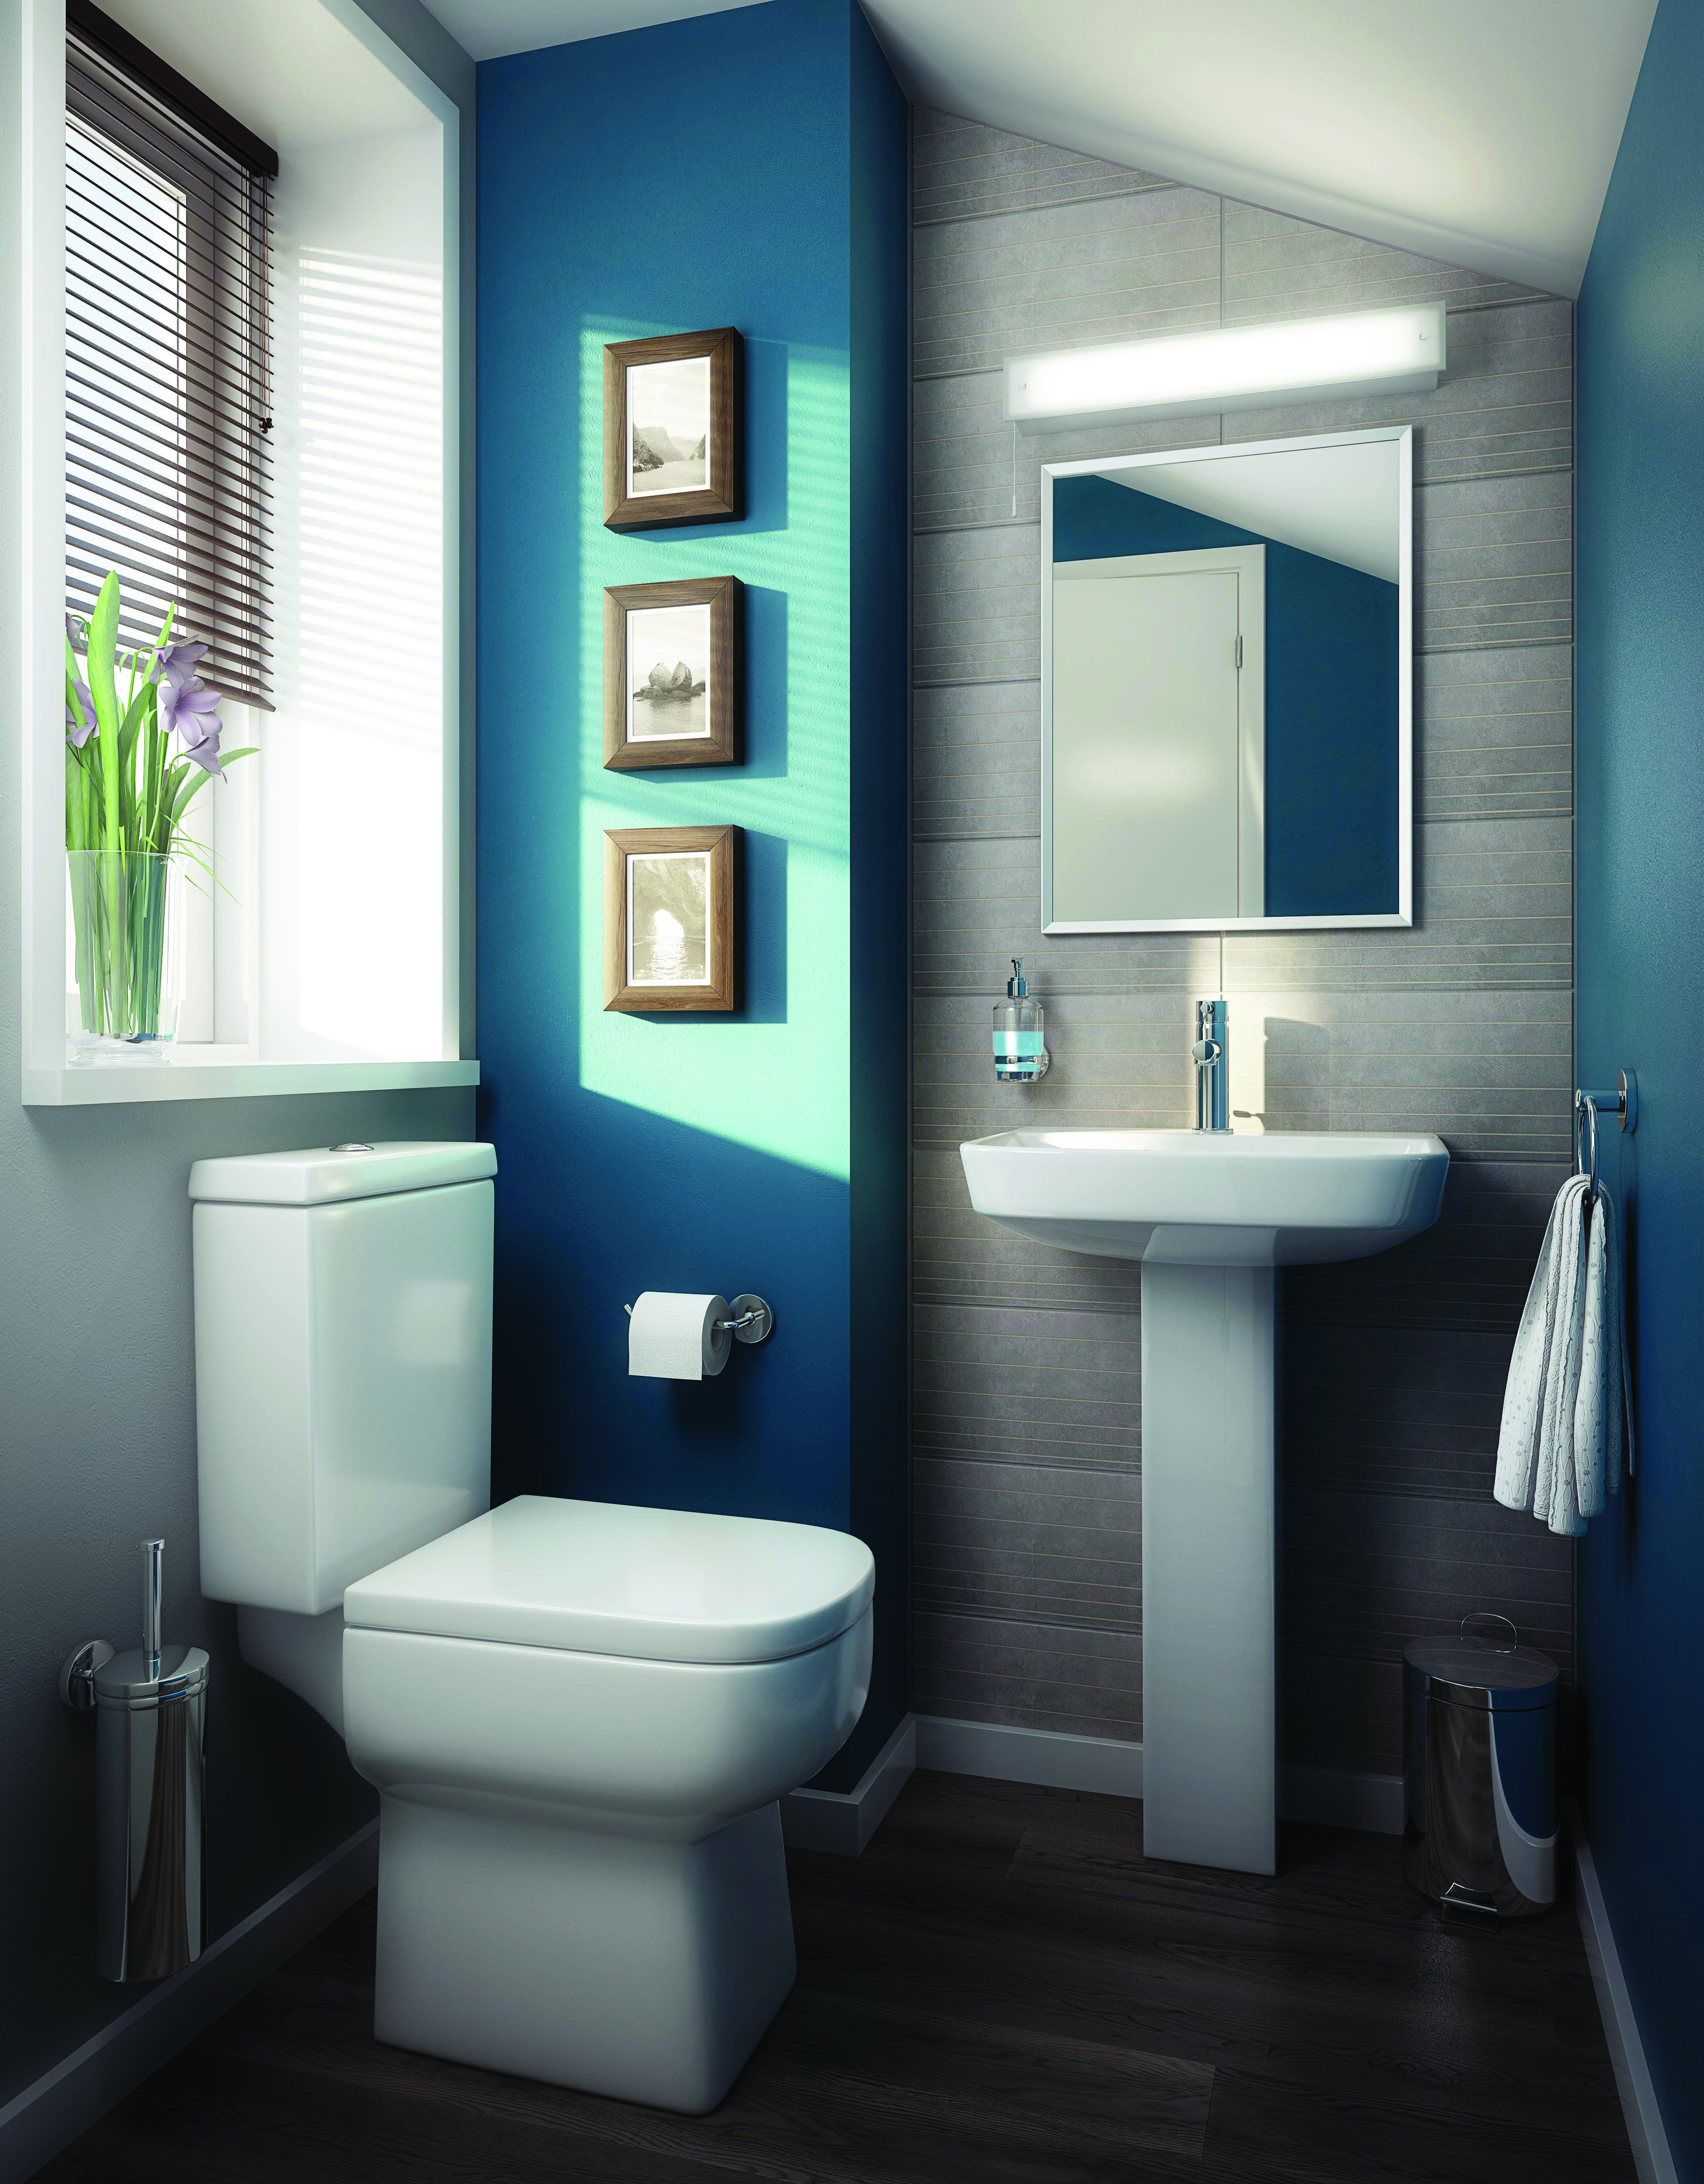 Cloakroom ideas that make the most of your small space and ...